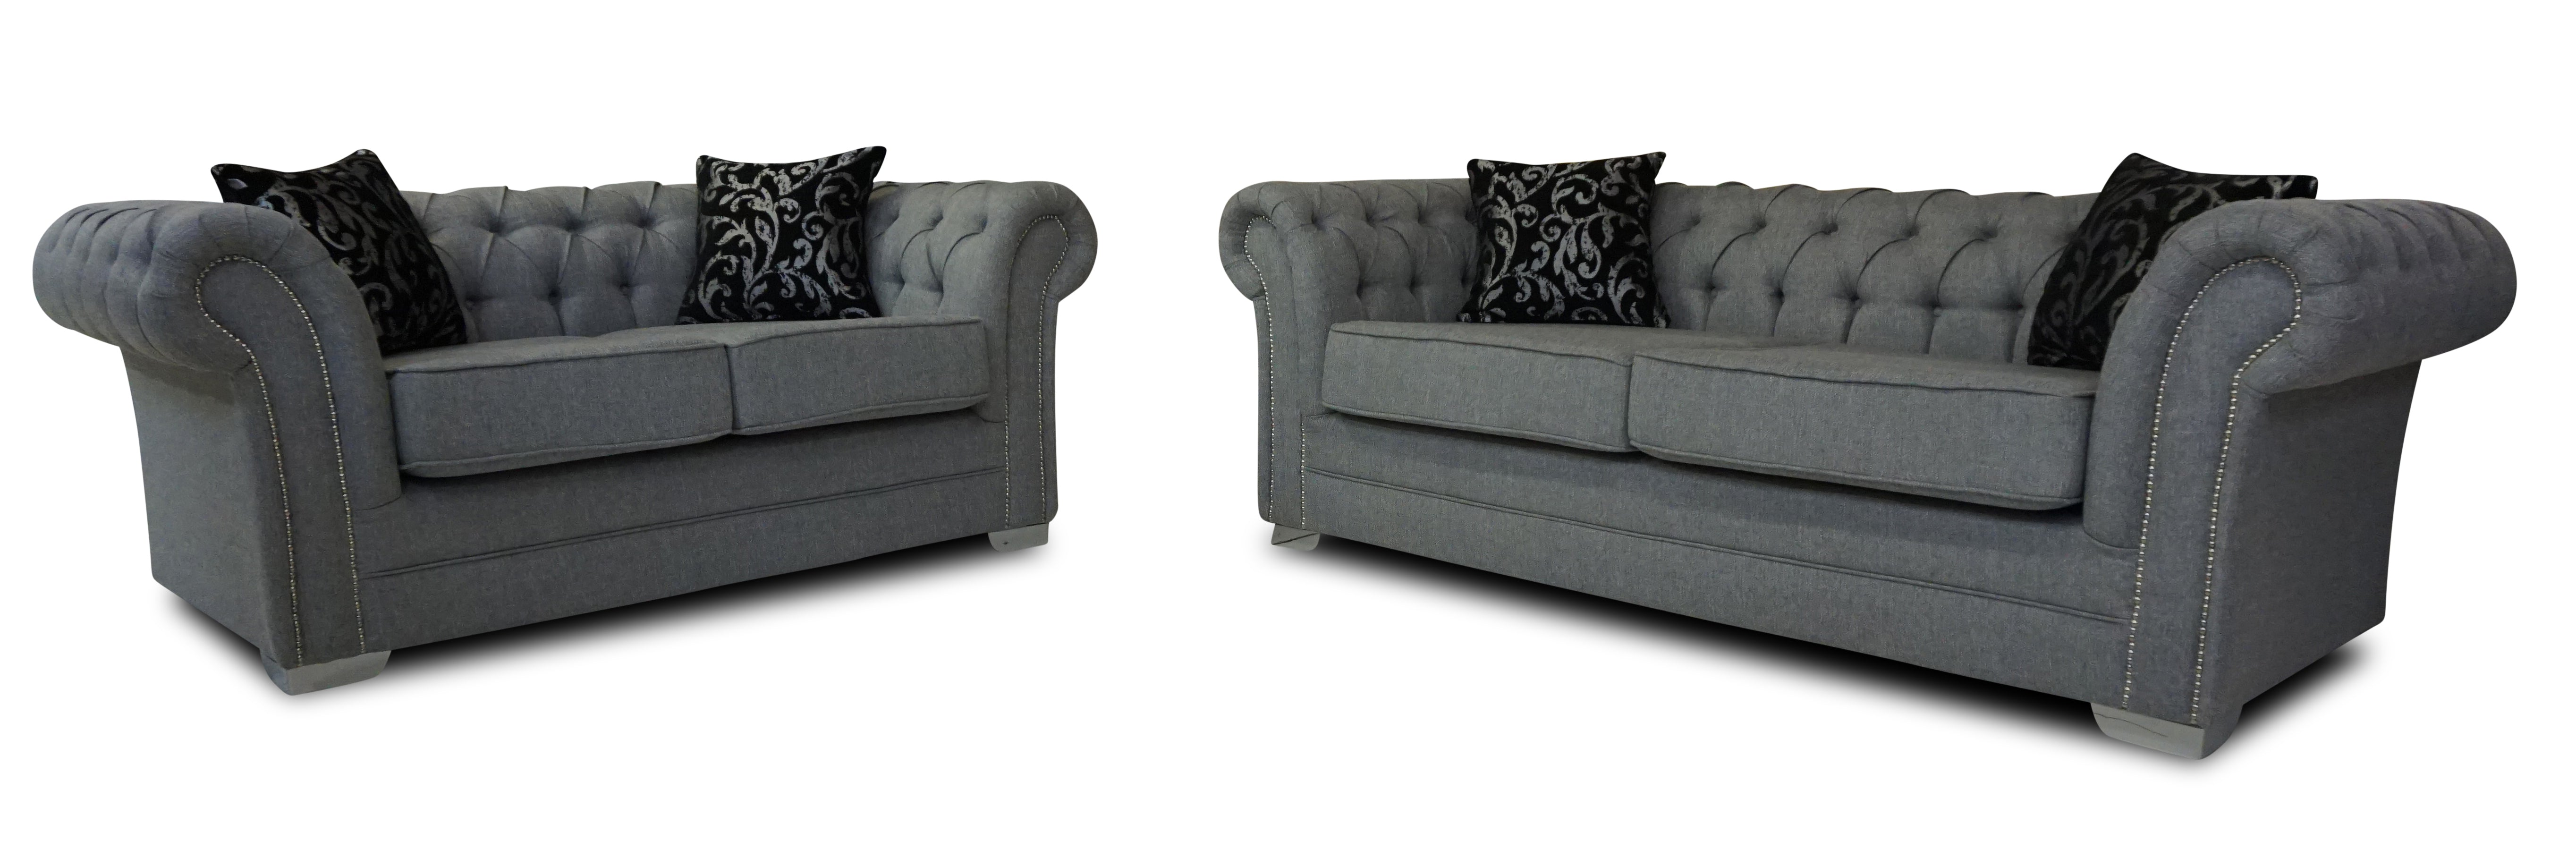 Fabric Sofas Near Everton